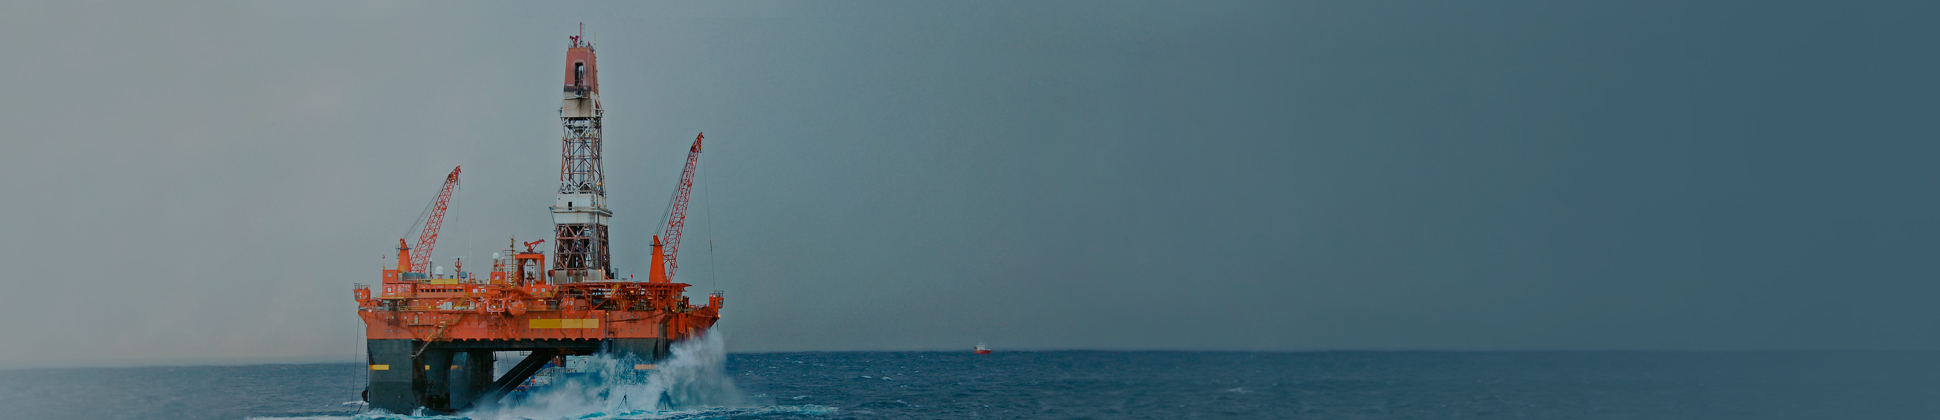 Offshore operations 1920x420